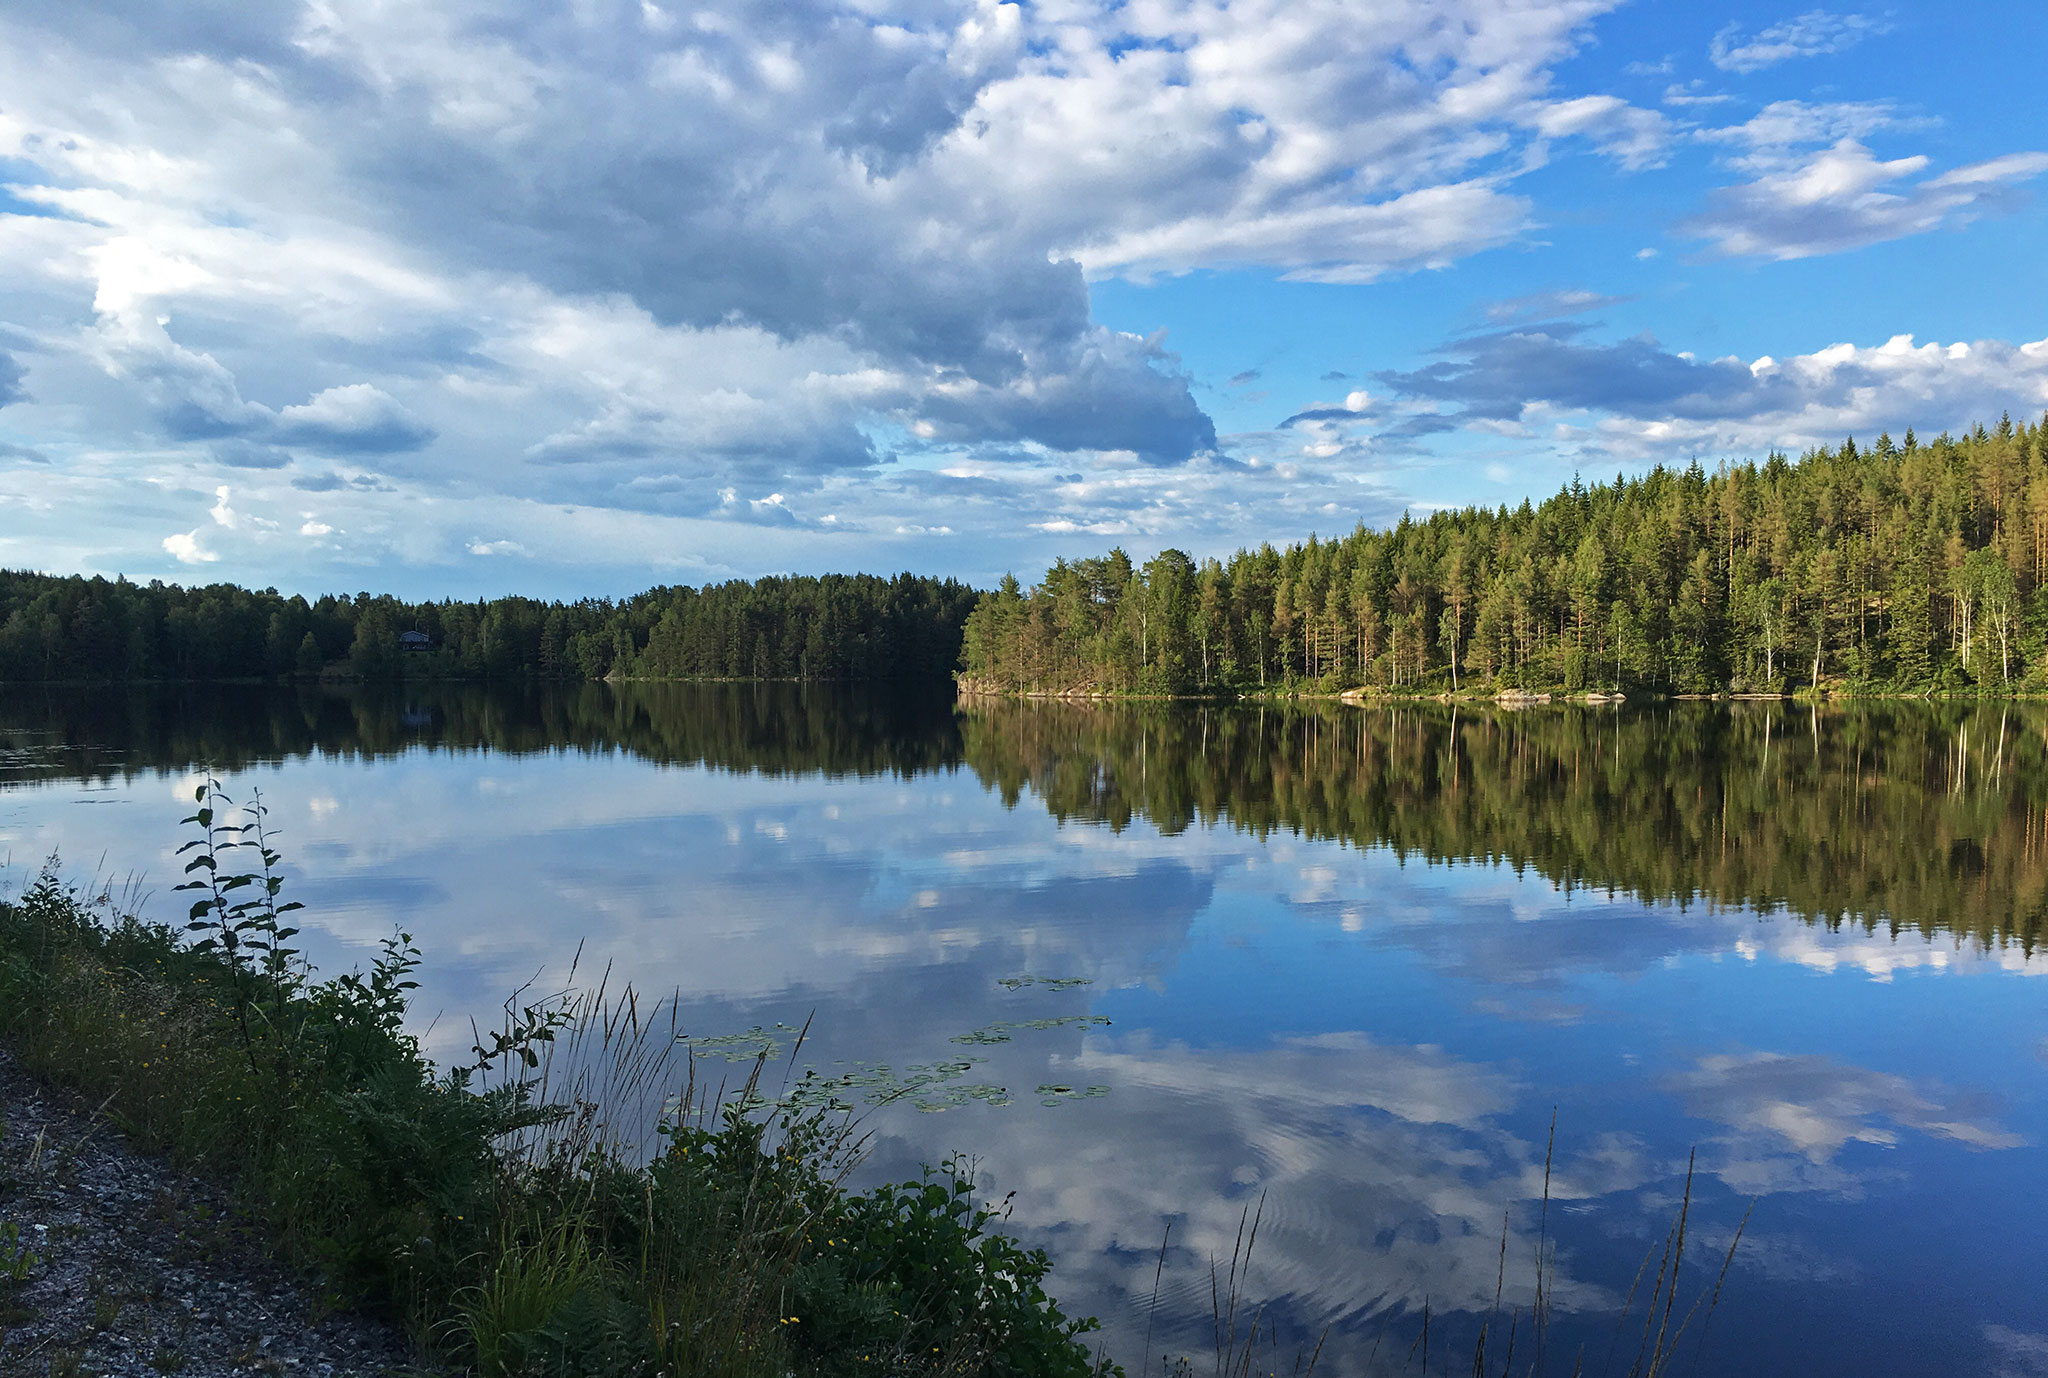 Lots of lakes in the region close to the Norwegian border